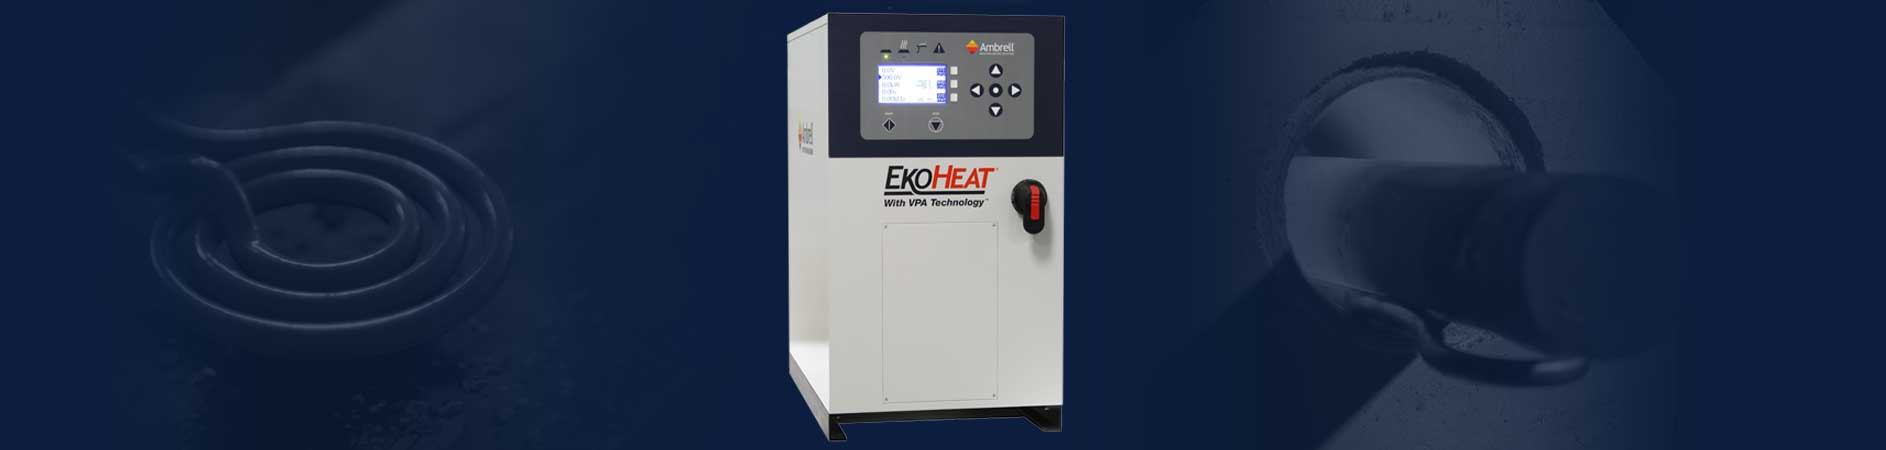 EKOHEAT Induction Heating Systems